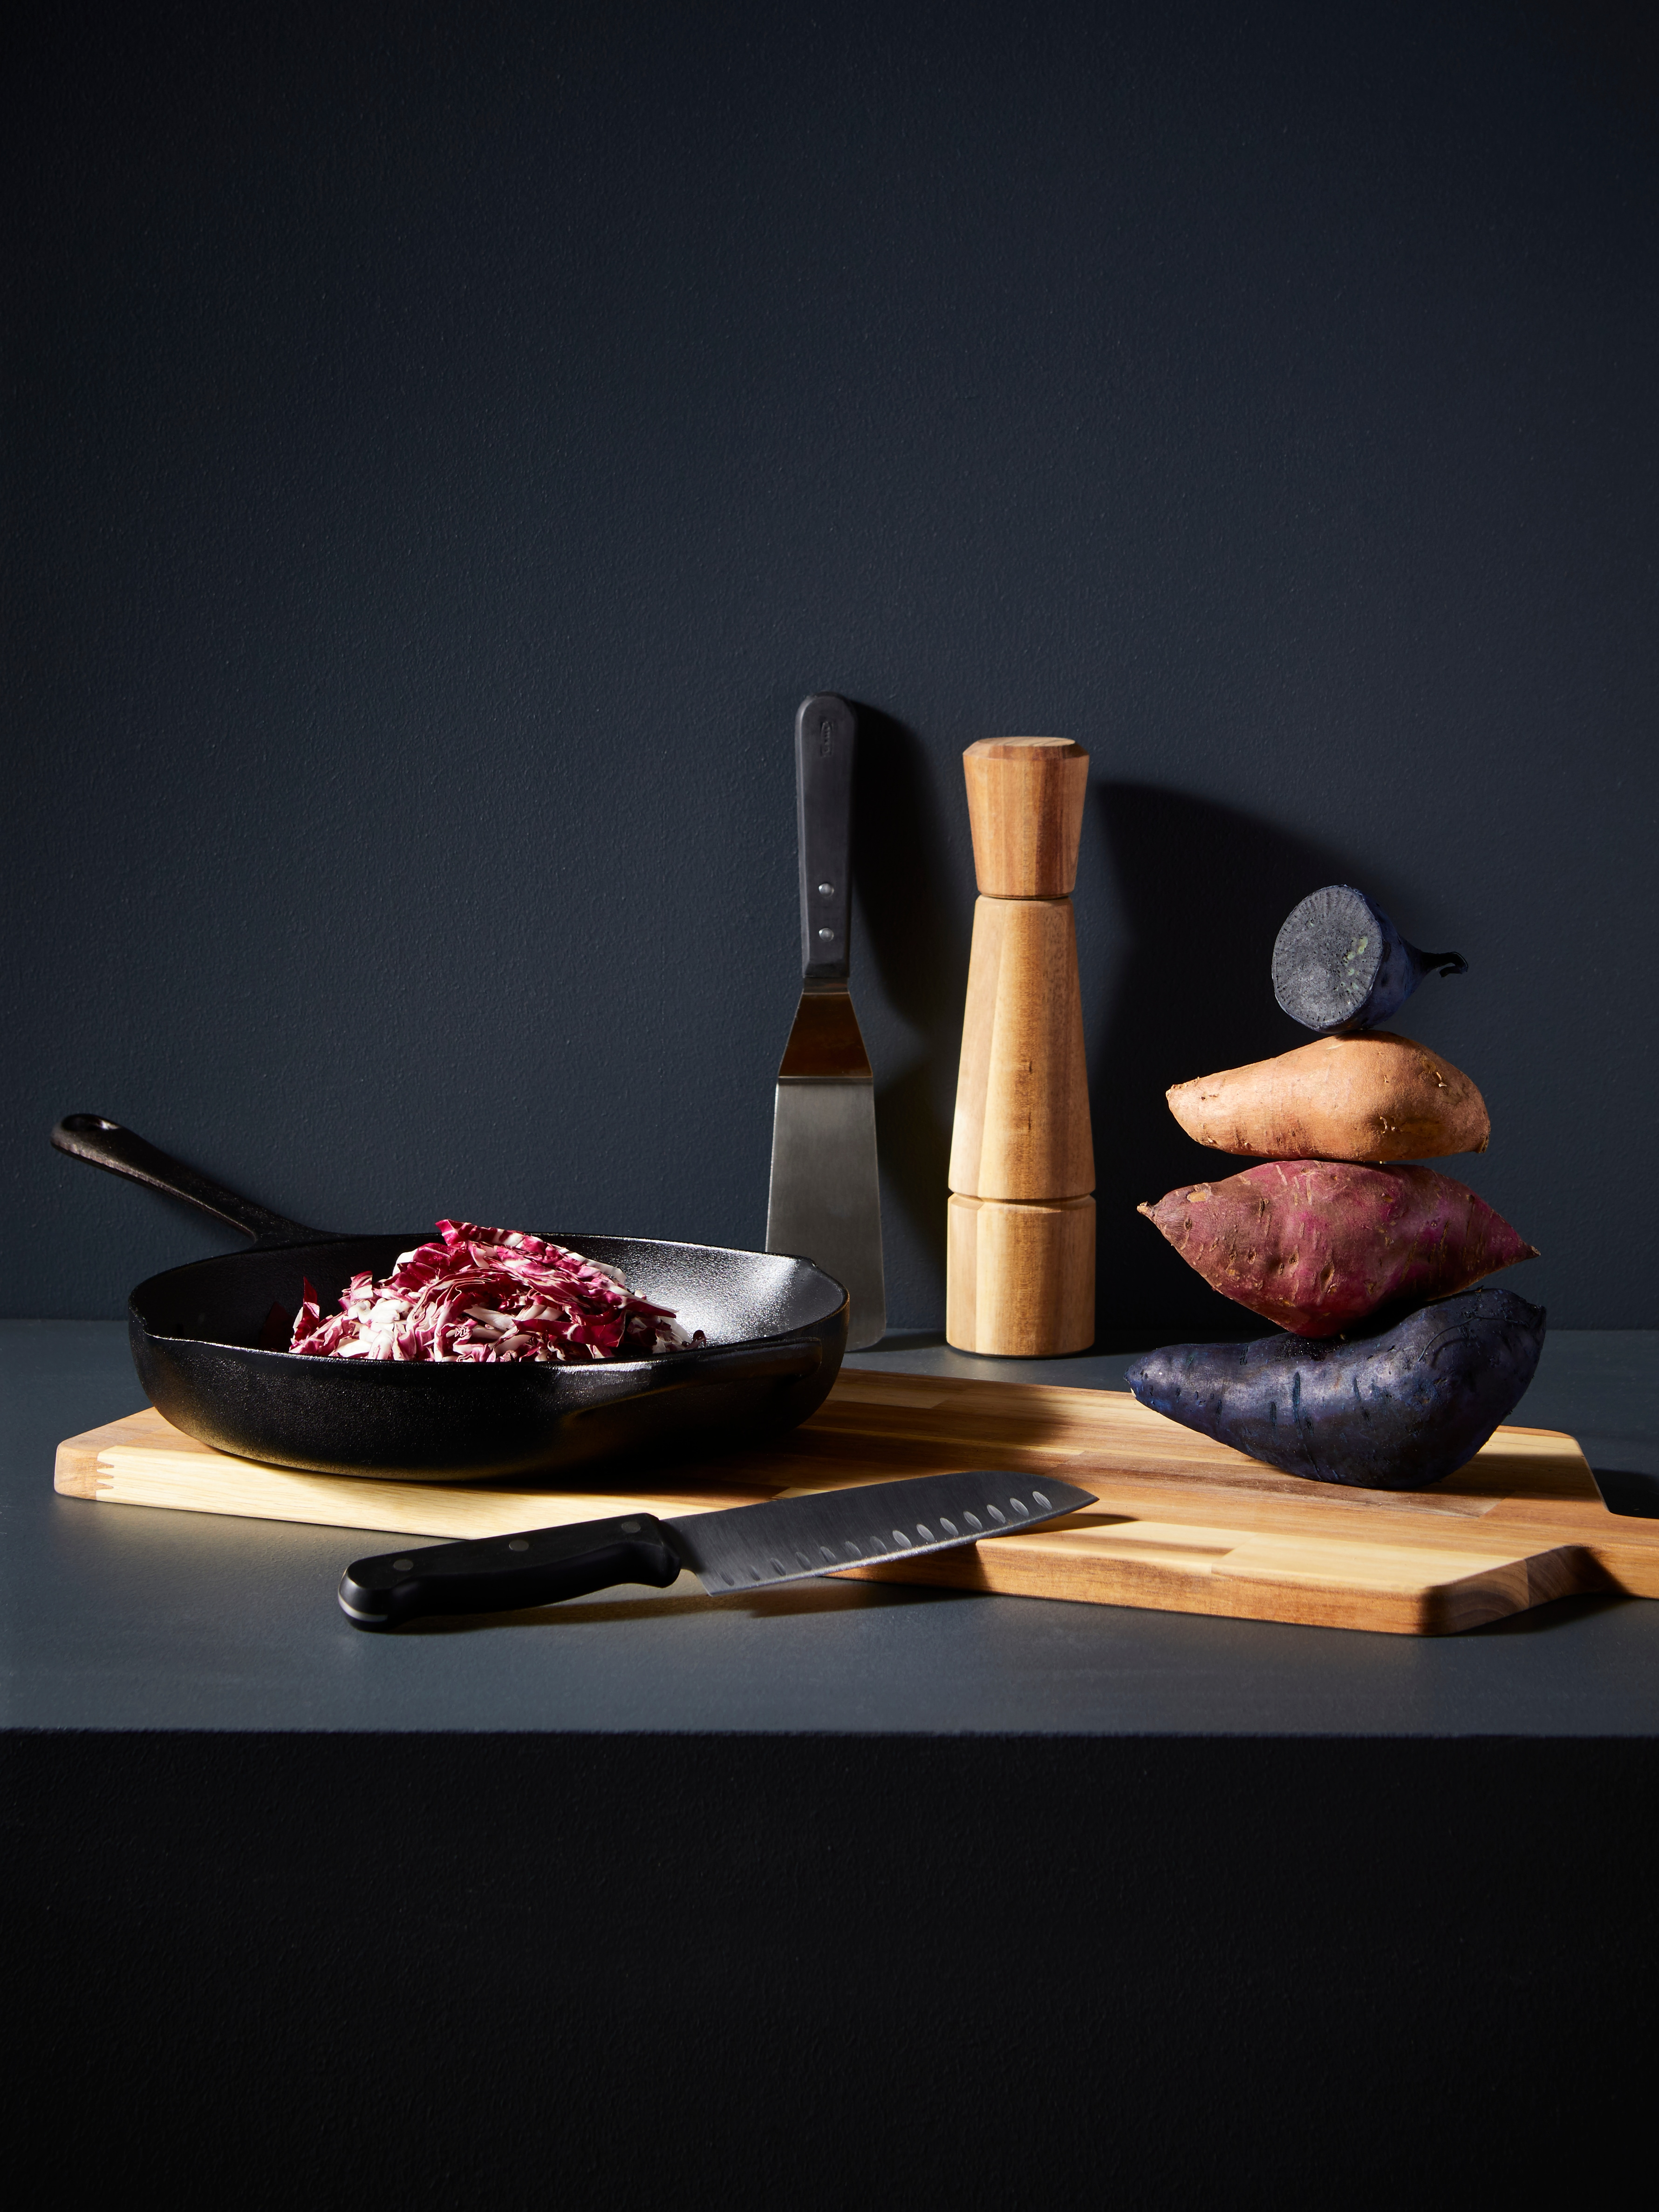 VARDAGEN cast iron frying pan, knife and spatula on a wooden board with potatoes stacked together and pepper mill.